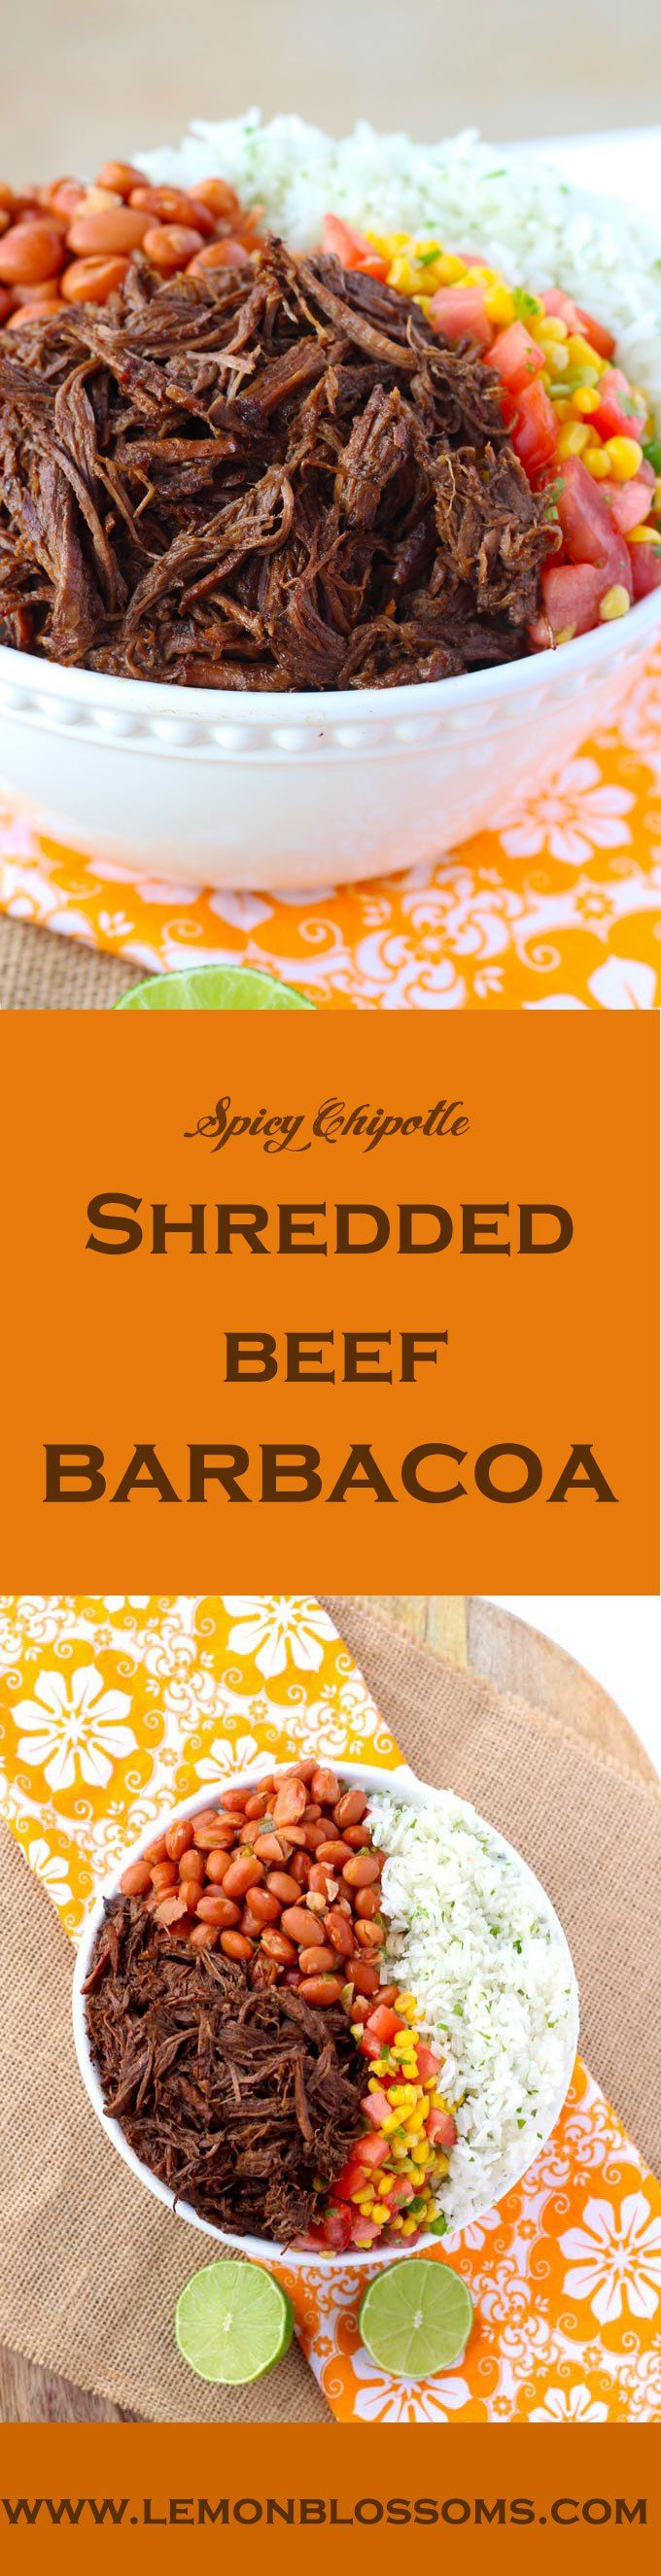 Slow braised until tender, spicy chipotle shredded beef barbacoa is delicious and the perfect meat for burritos and burrito bowls!